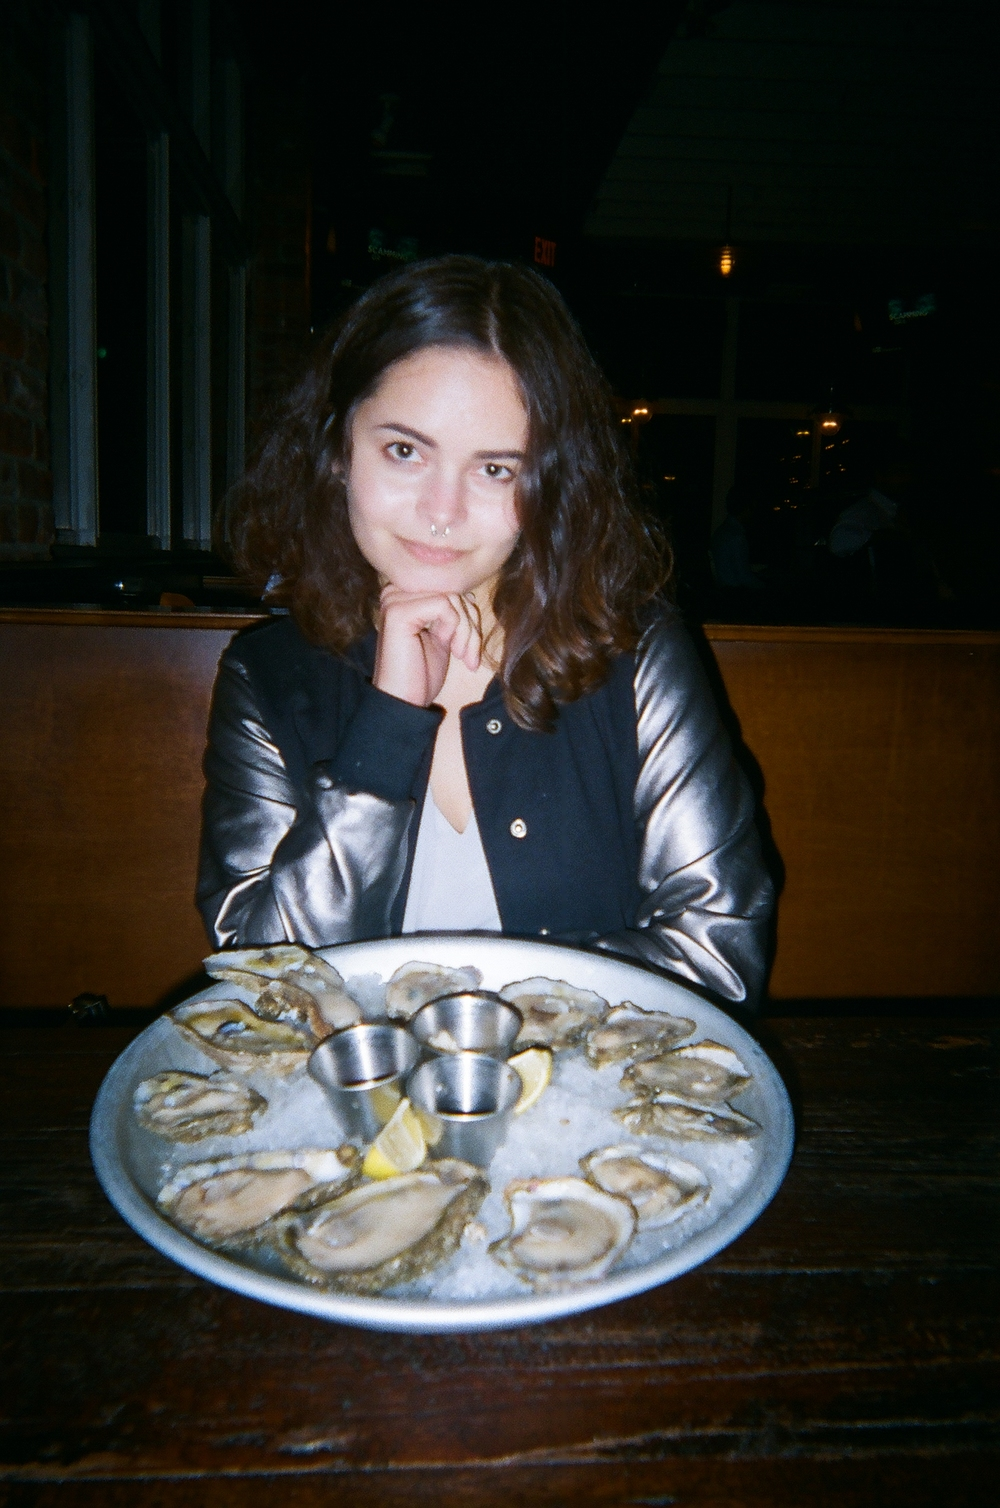 It me! With my favorite food, OYSTERS! I only started eating them last year, but seafood has been a part of my life since I was a beeb. I grew up 15 minutes away from the Atlantic ocean. Shoutout to that jacket—it's a favorite of mine.